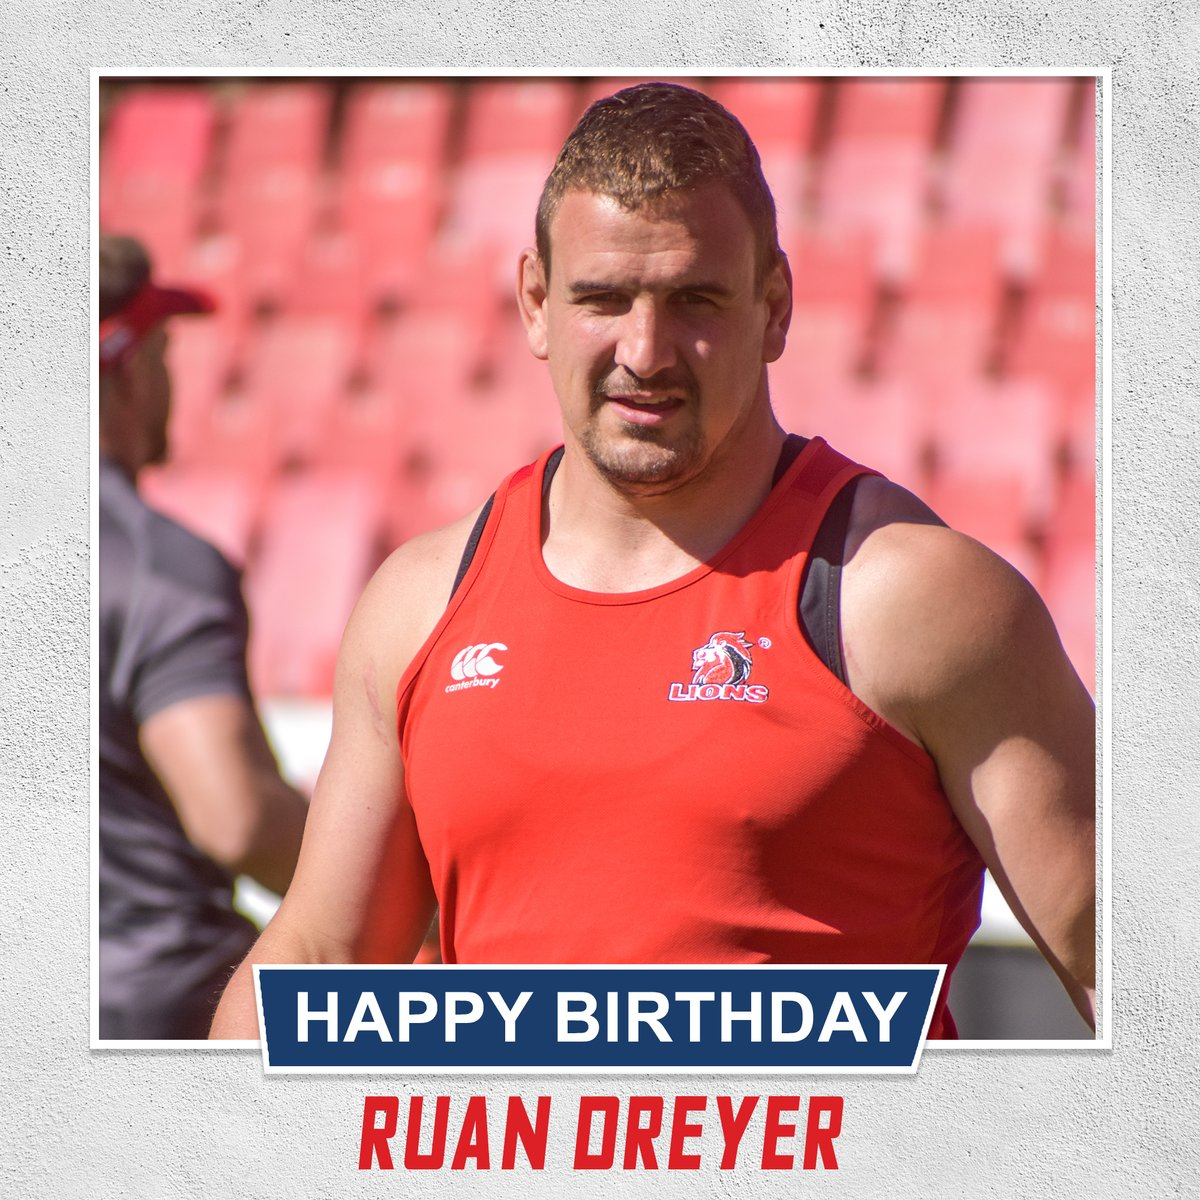 Happy birthday, @dreyer_ruan!  #LionsPride https://t.co/oeAI3KVfyr